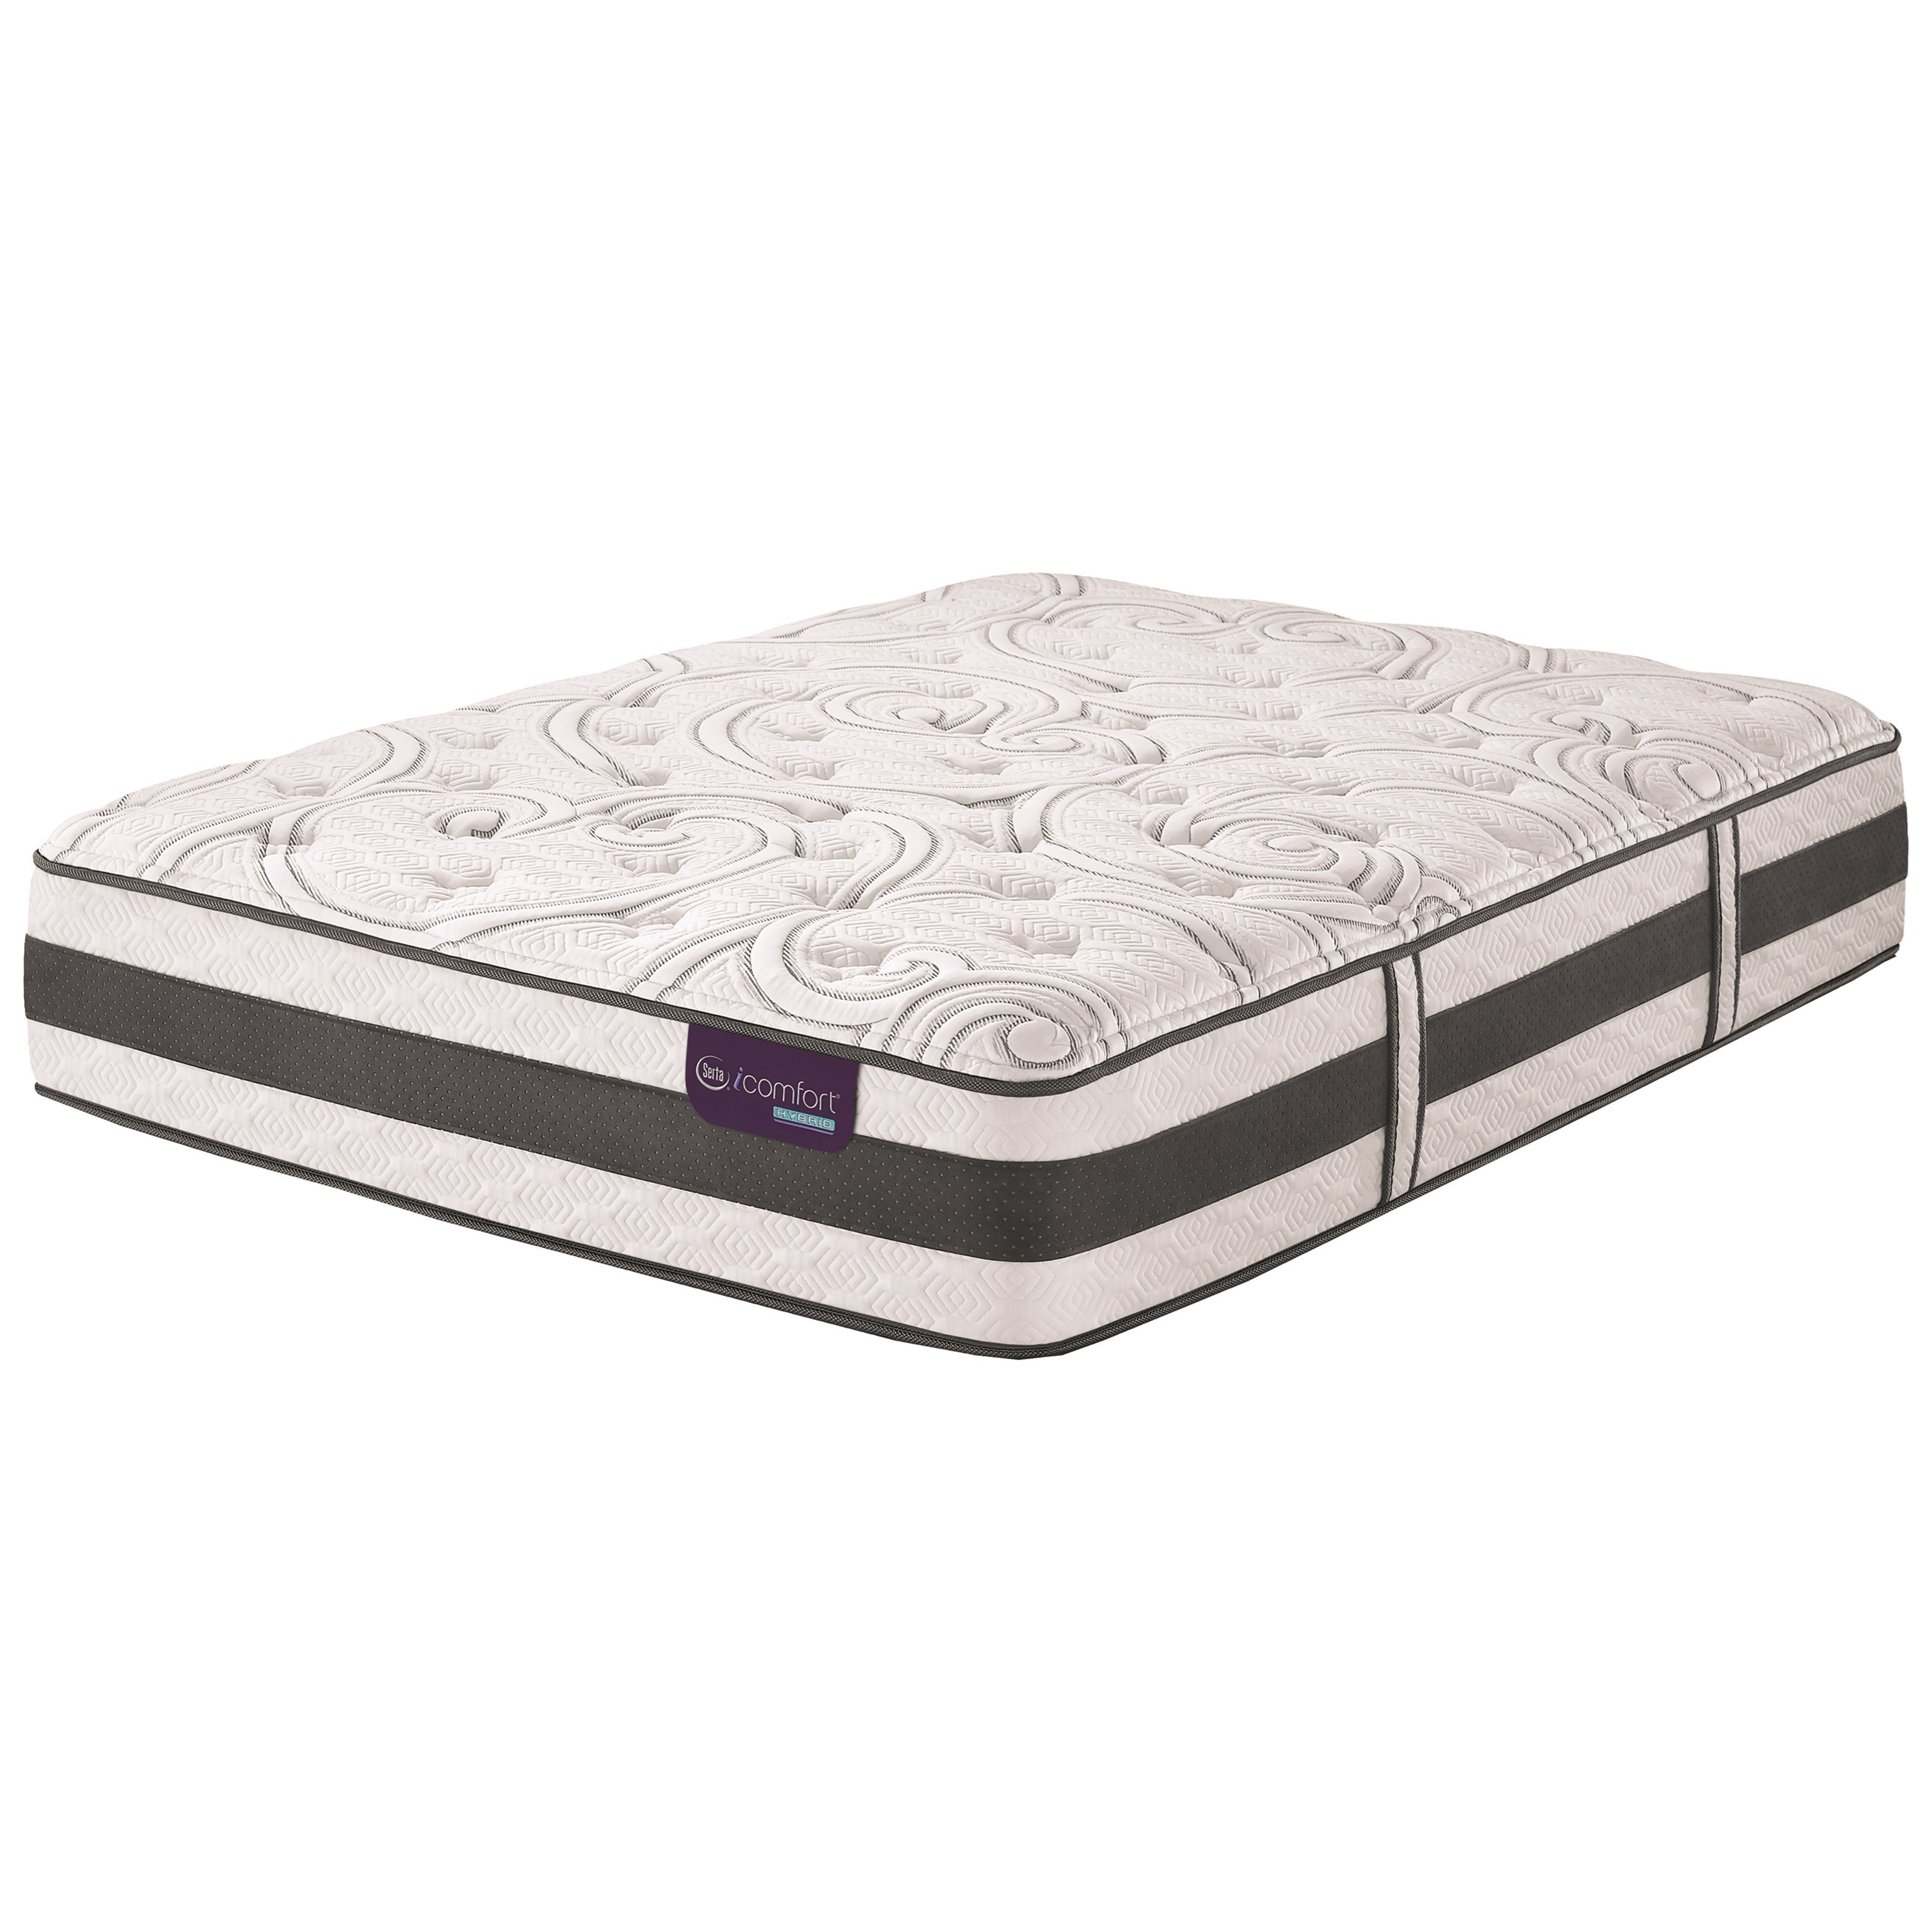 Serta iComfort Hybrid Applause II Cal King Plush Hybrid Quilted Mattress - Item Number: ApplauseIIPlush-CK